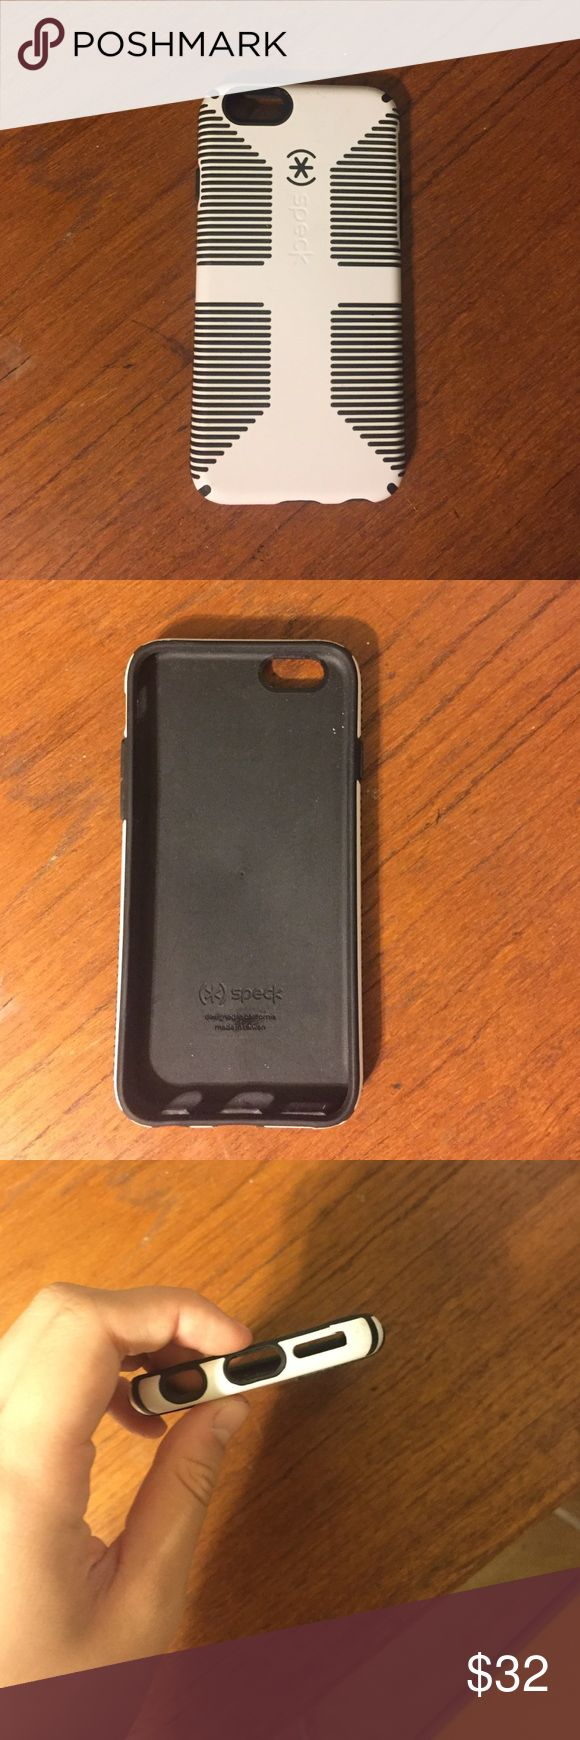 SPECK iPhone 6 case SPECK iPhone 6 case. Used but great condition. Small crack on the bottom (picture 3) but barely noticeable Accessories Phone Cases